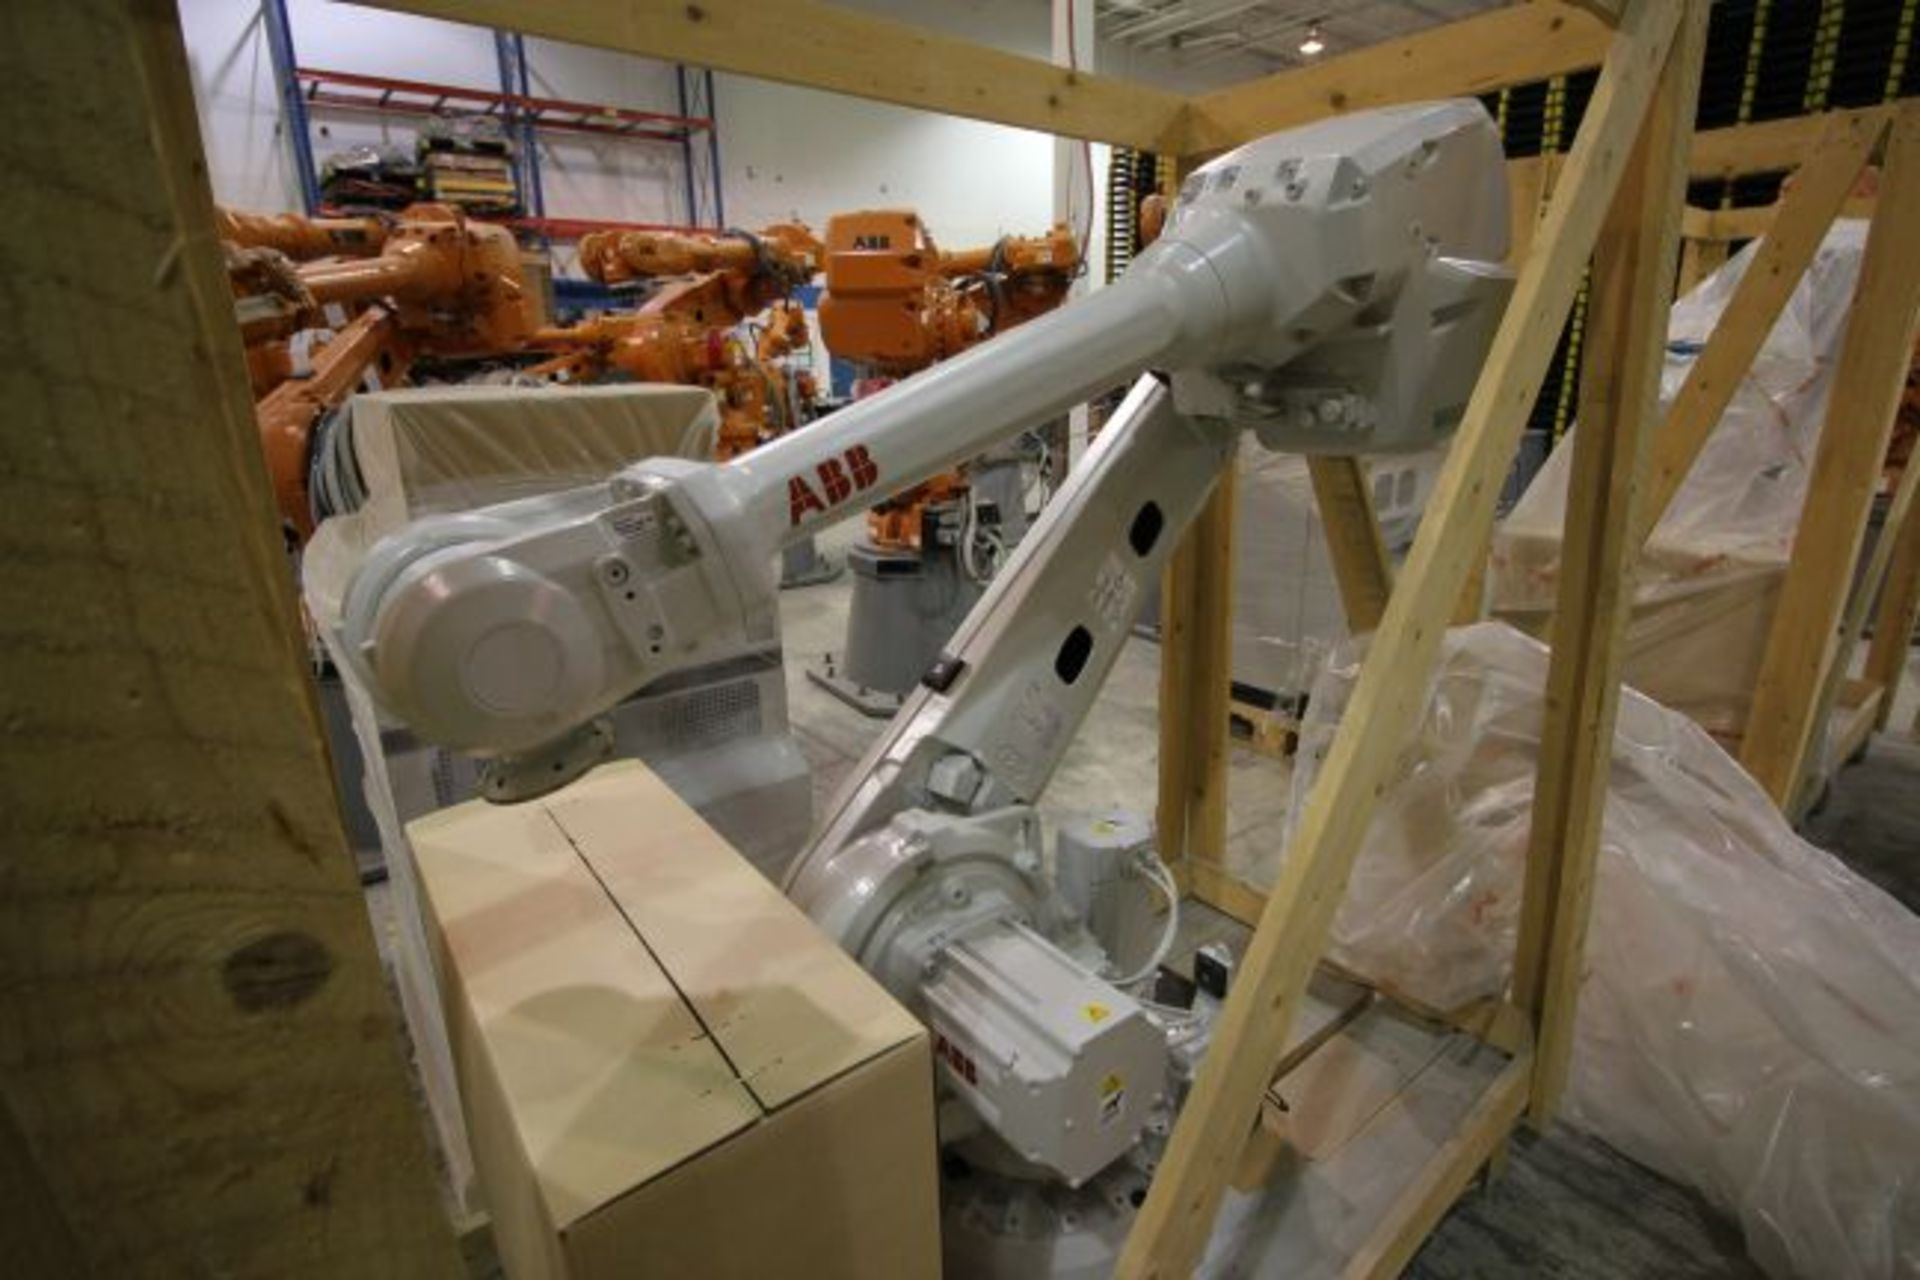 (NEW) ABB ROBOT IRB 4600 2.55/40KG WITH IRC5 CONTROLS, YEAR 2014, SN 101897 TEACH PENDANT& CABLES - Image 3 of 11